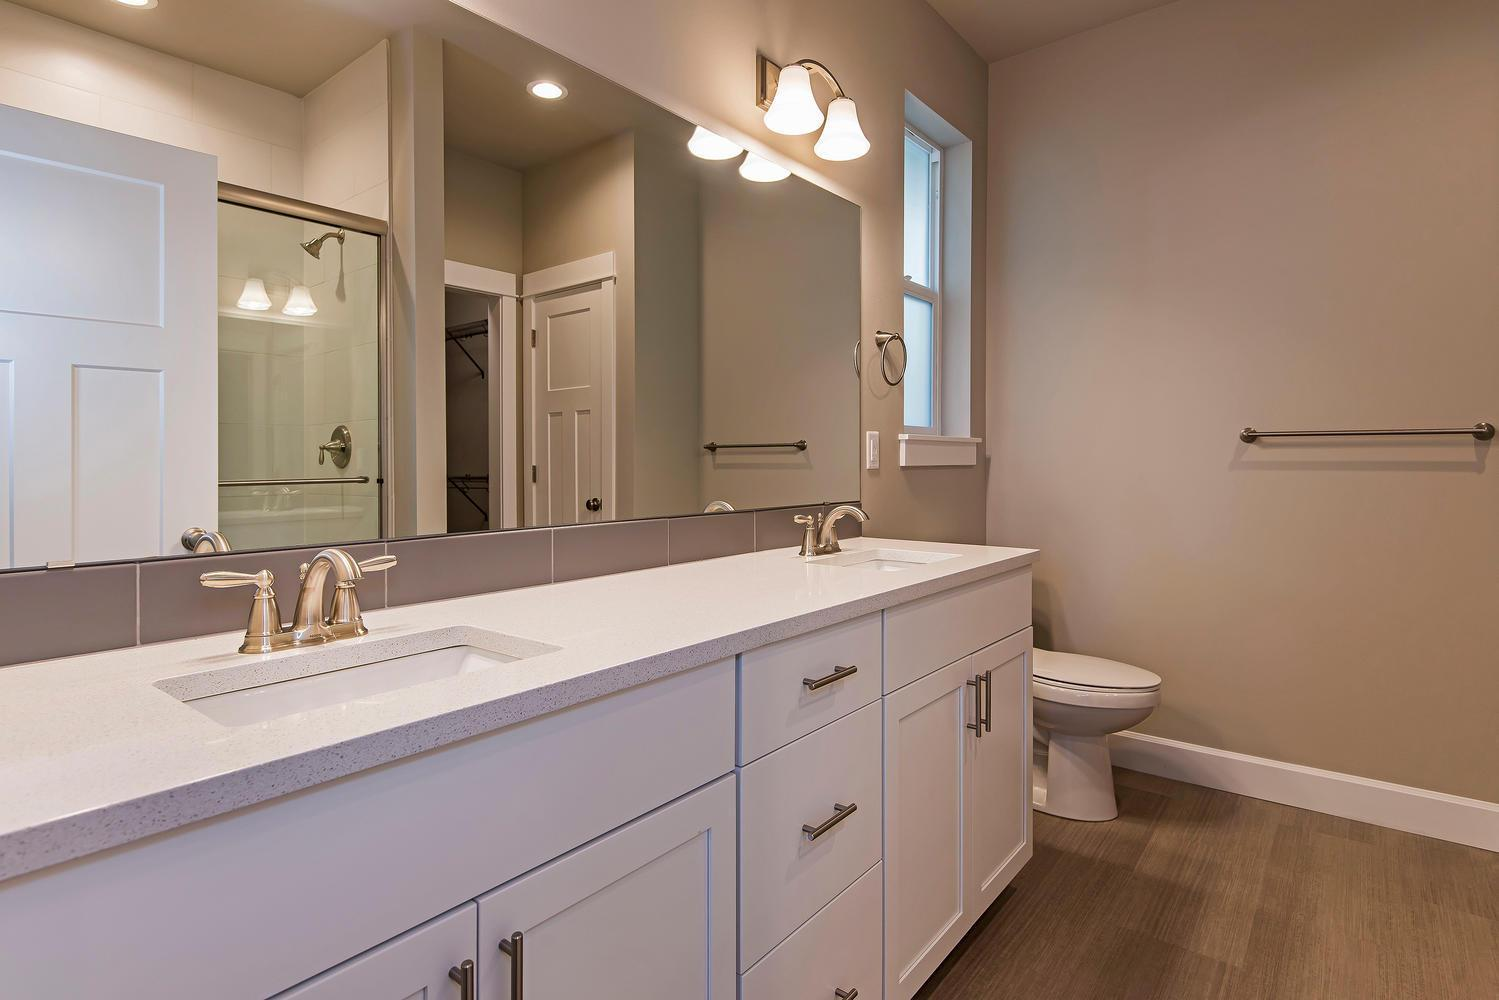 Bathroom featured in The Douglas By Woodhill Homes in Central Oregon, OR